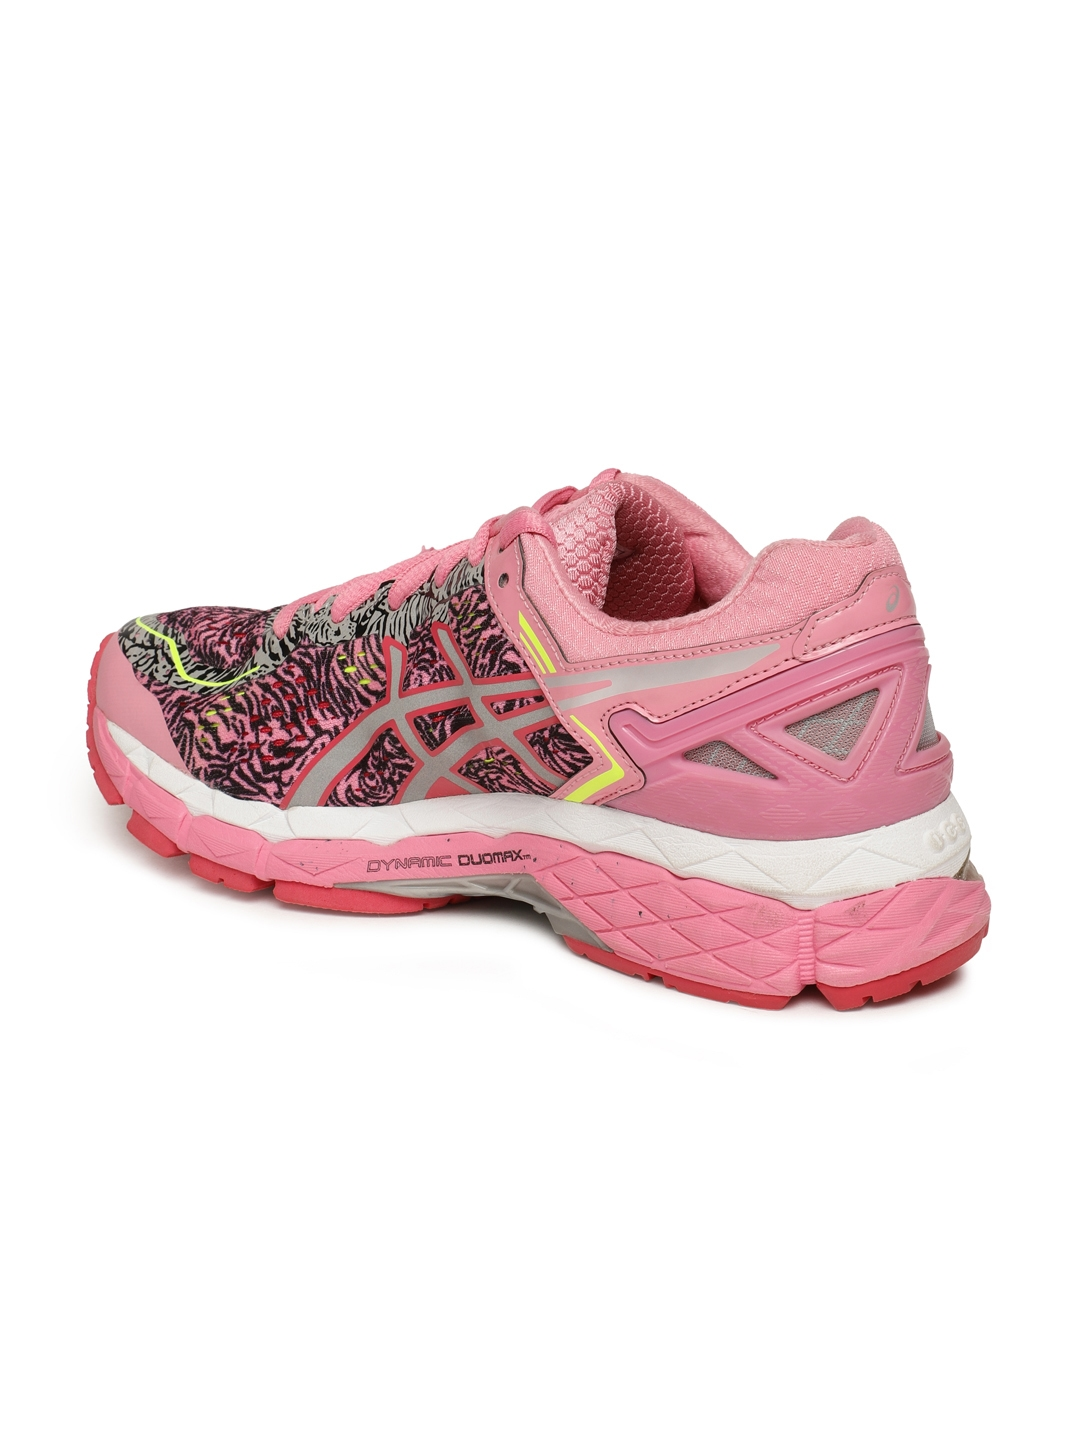 d3a0d141e6535a Buy ASICS Women GEL KAYANO 22 LITE SHOW Pink Running Shoes - Sports ...